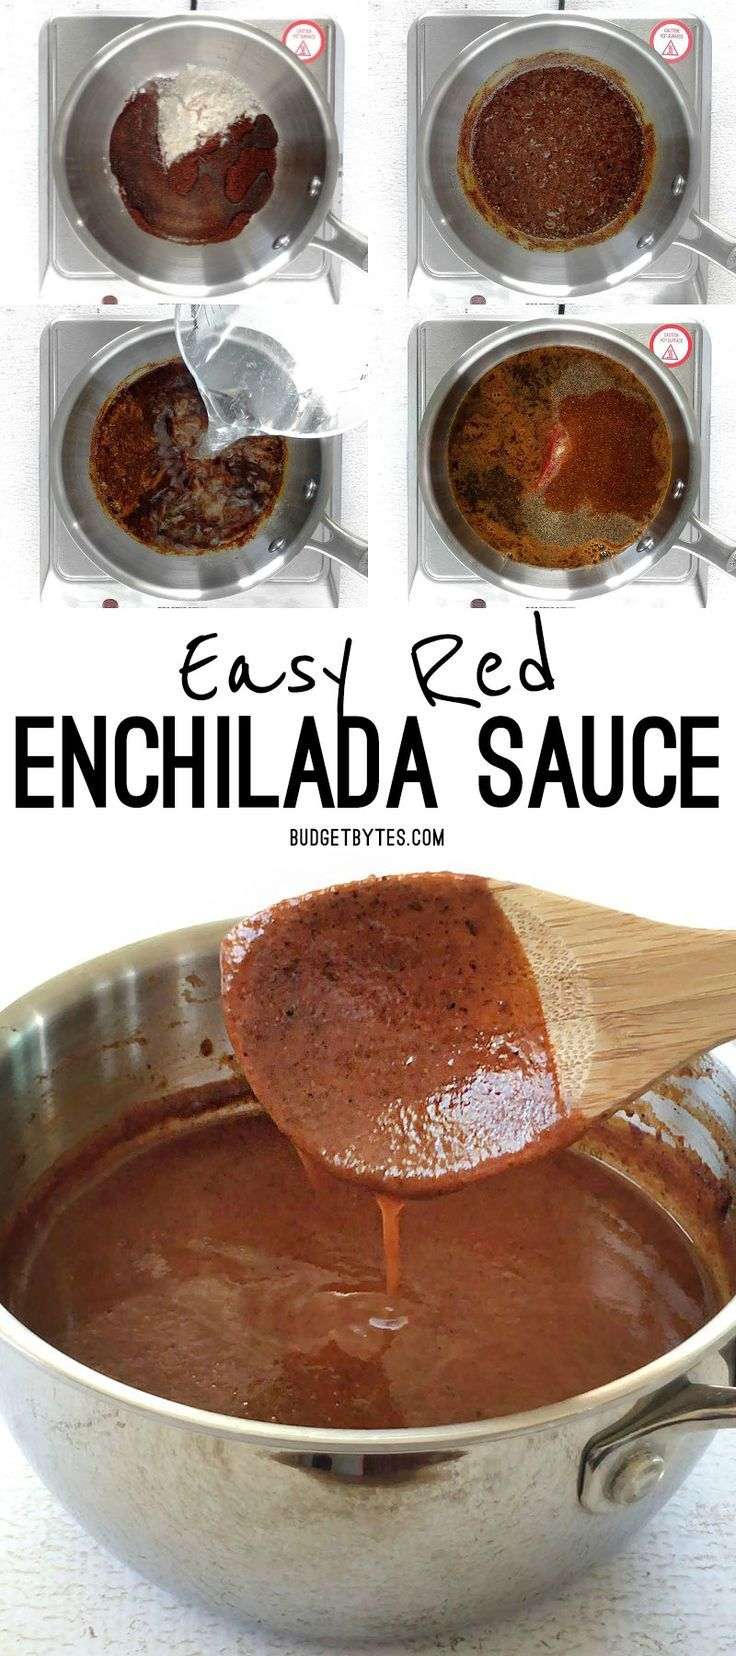 It only takes 10 minutes to make this super easy red enchilada sauce that is bursting with flavor. Never buy the canned stuff again! @budgetbytes